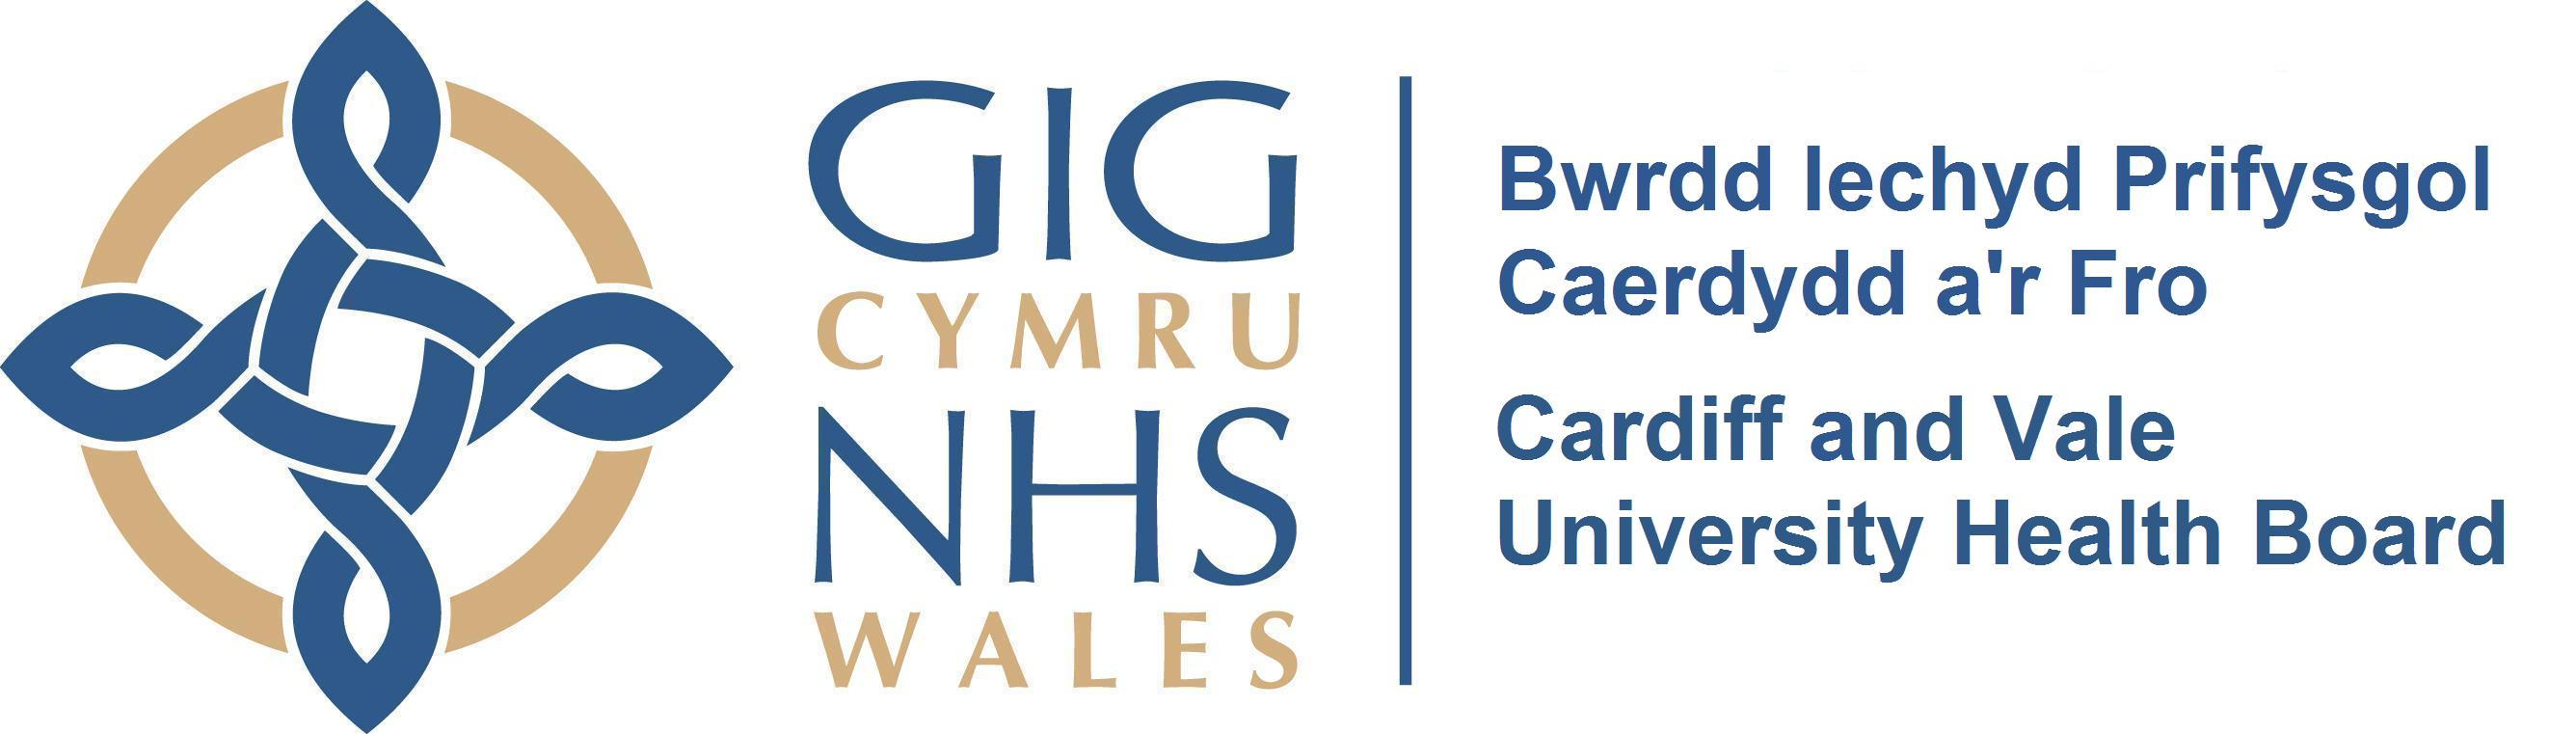 https://i0.wp.com/static.uk-plc.net/library/24n-biz/images/case-studies/lhb-logo-cardiff.jpg